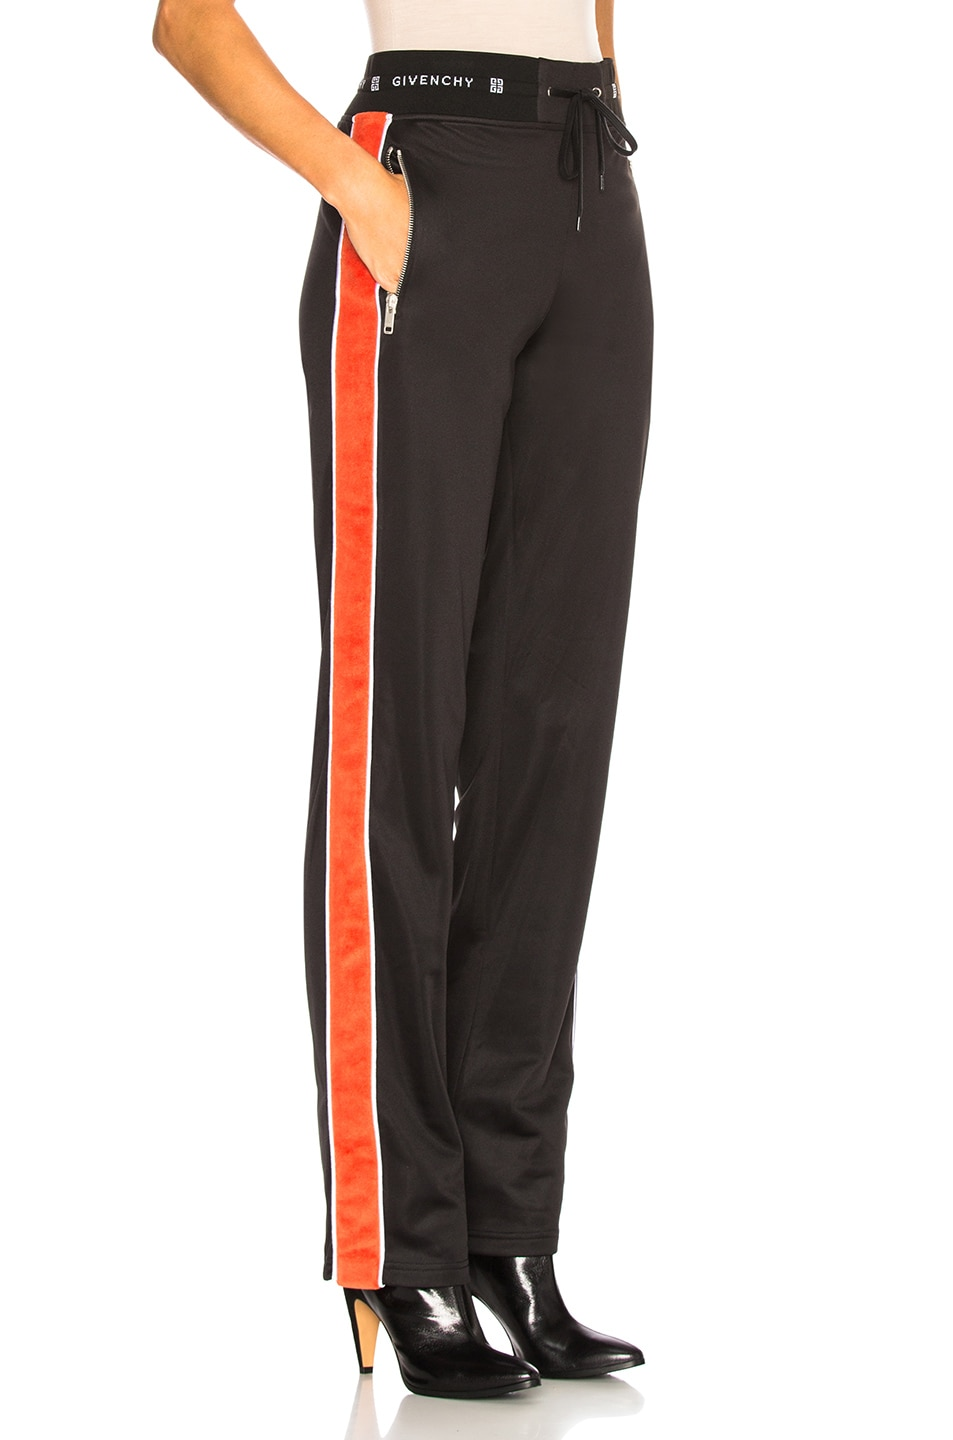 Image 3 of Givenchy Technical Neoprene Jersey Joggers in Black & Orange